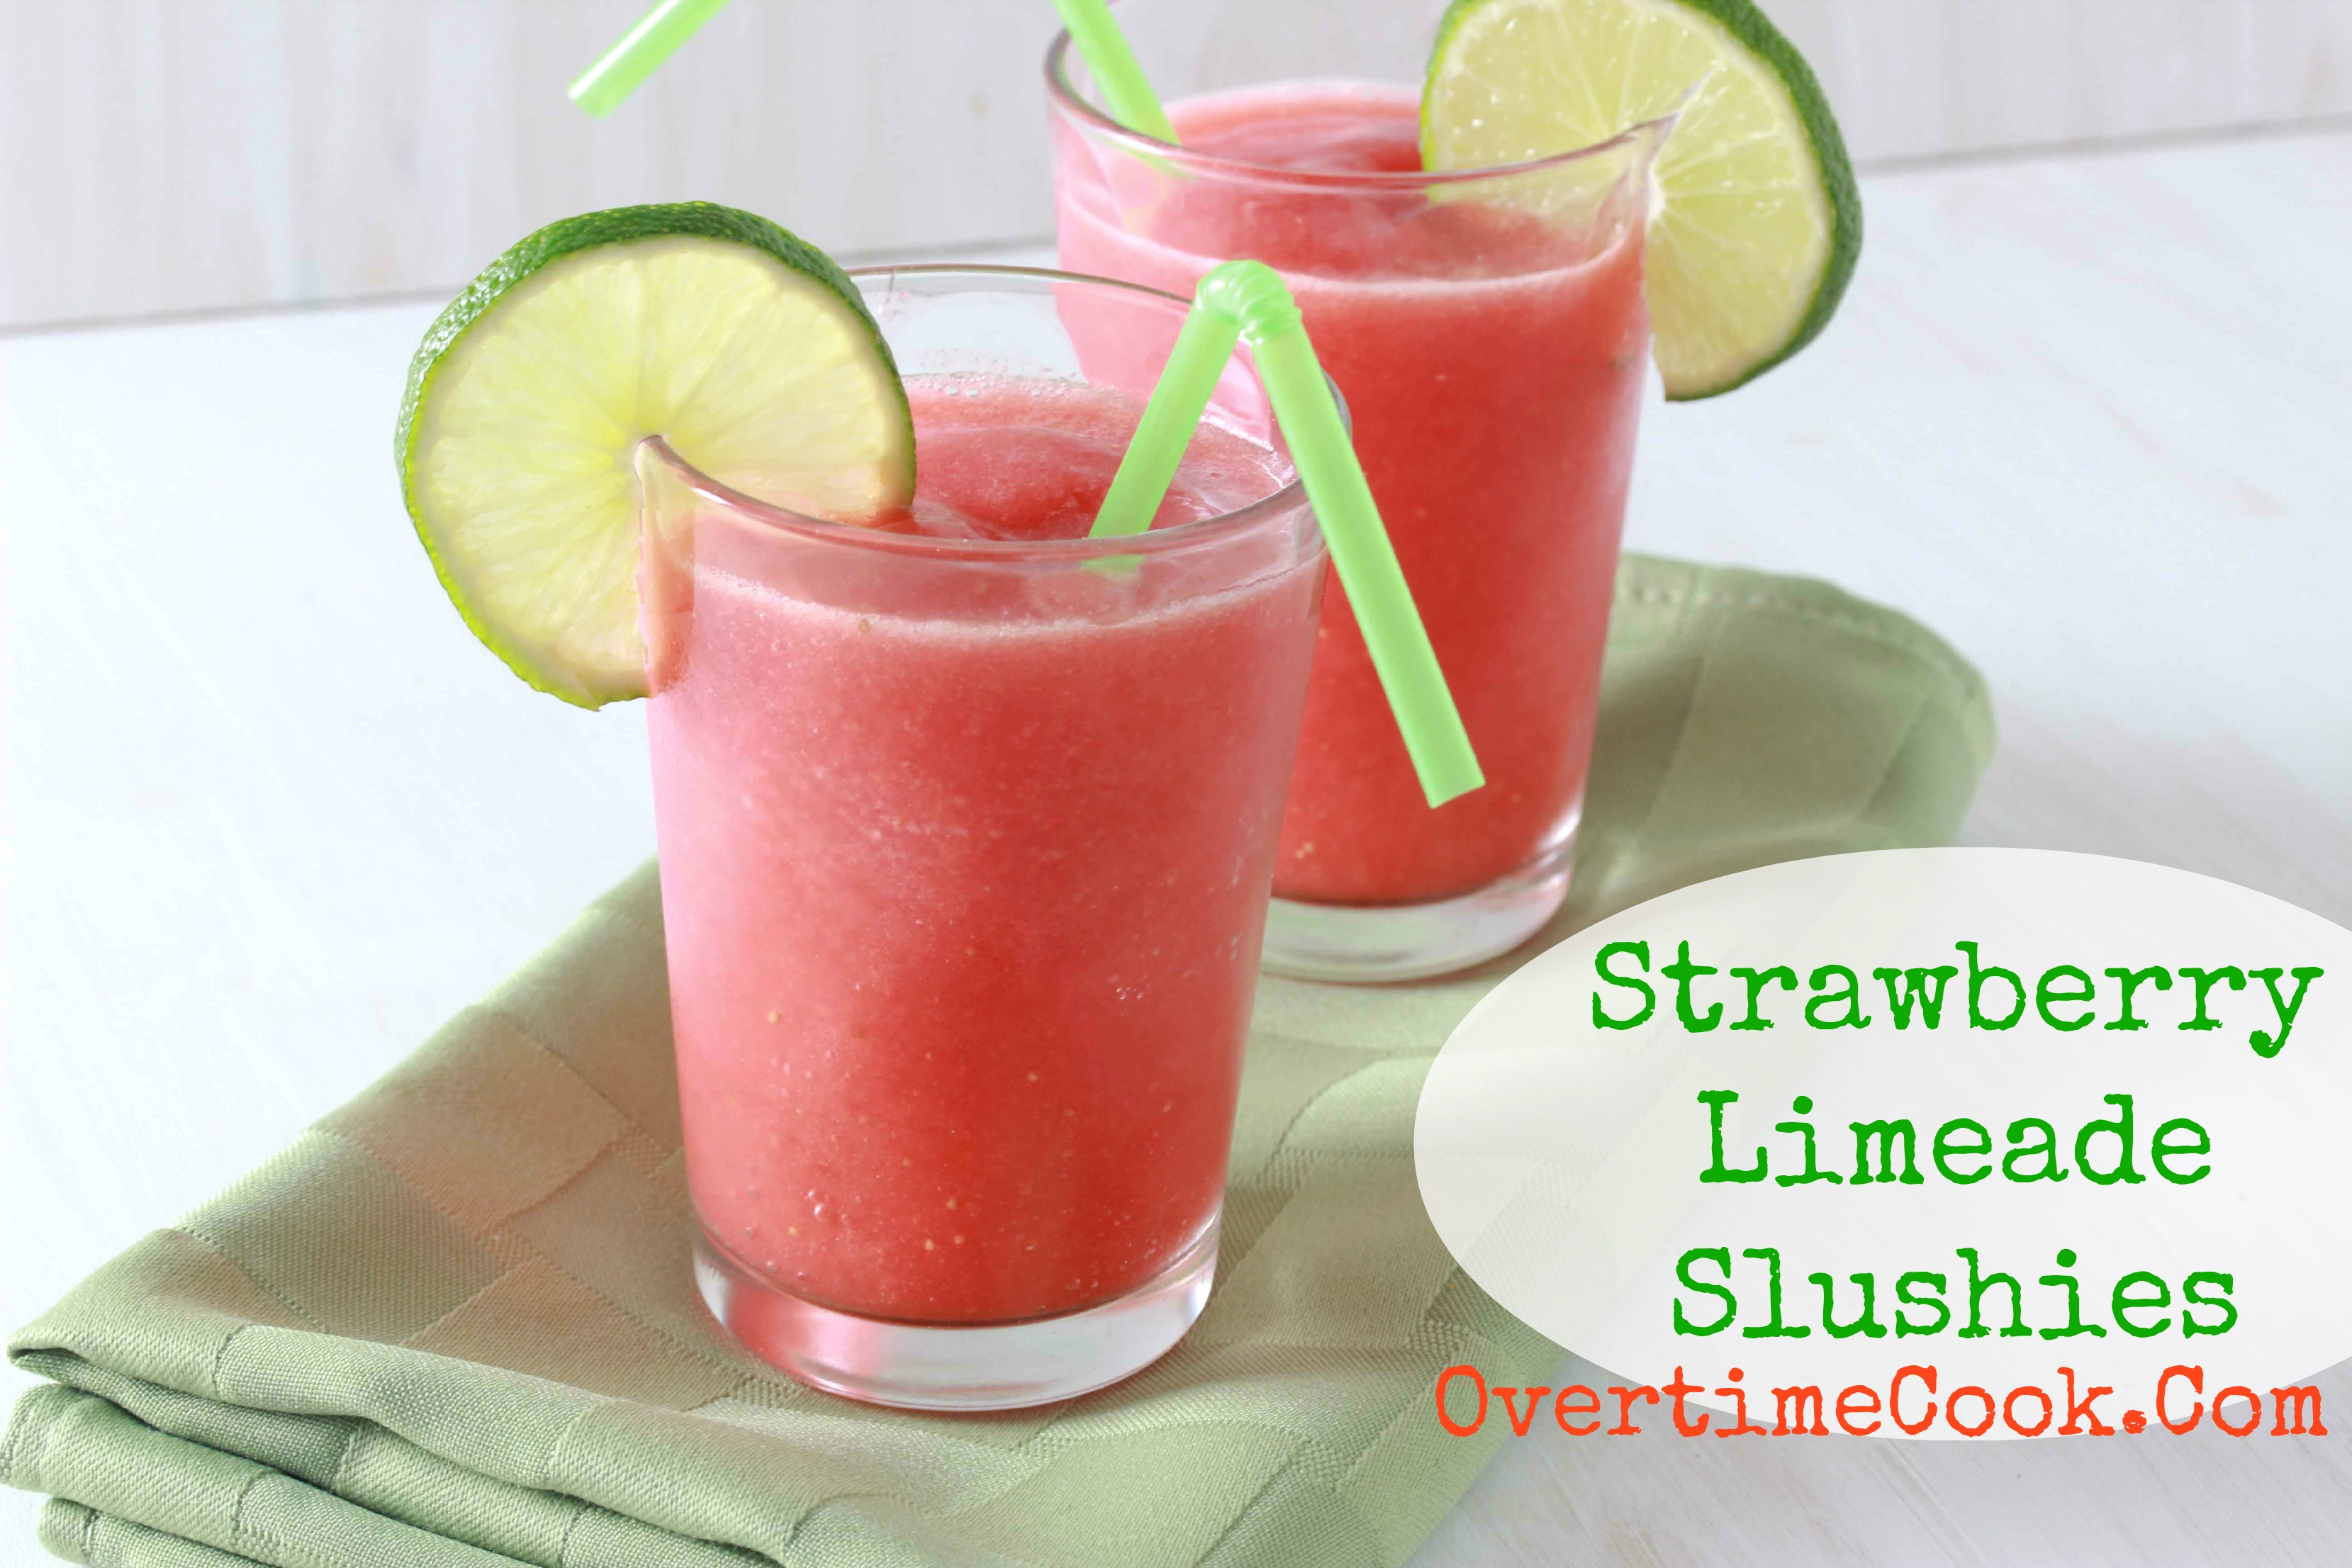 strawberry limeade slushies on overtime cook